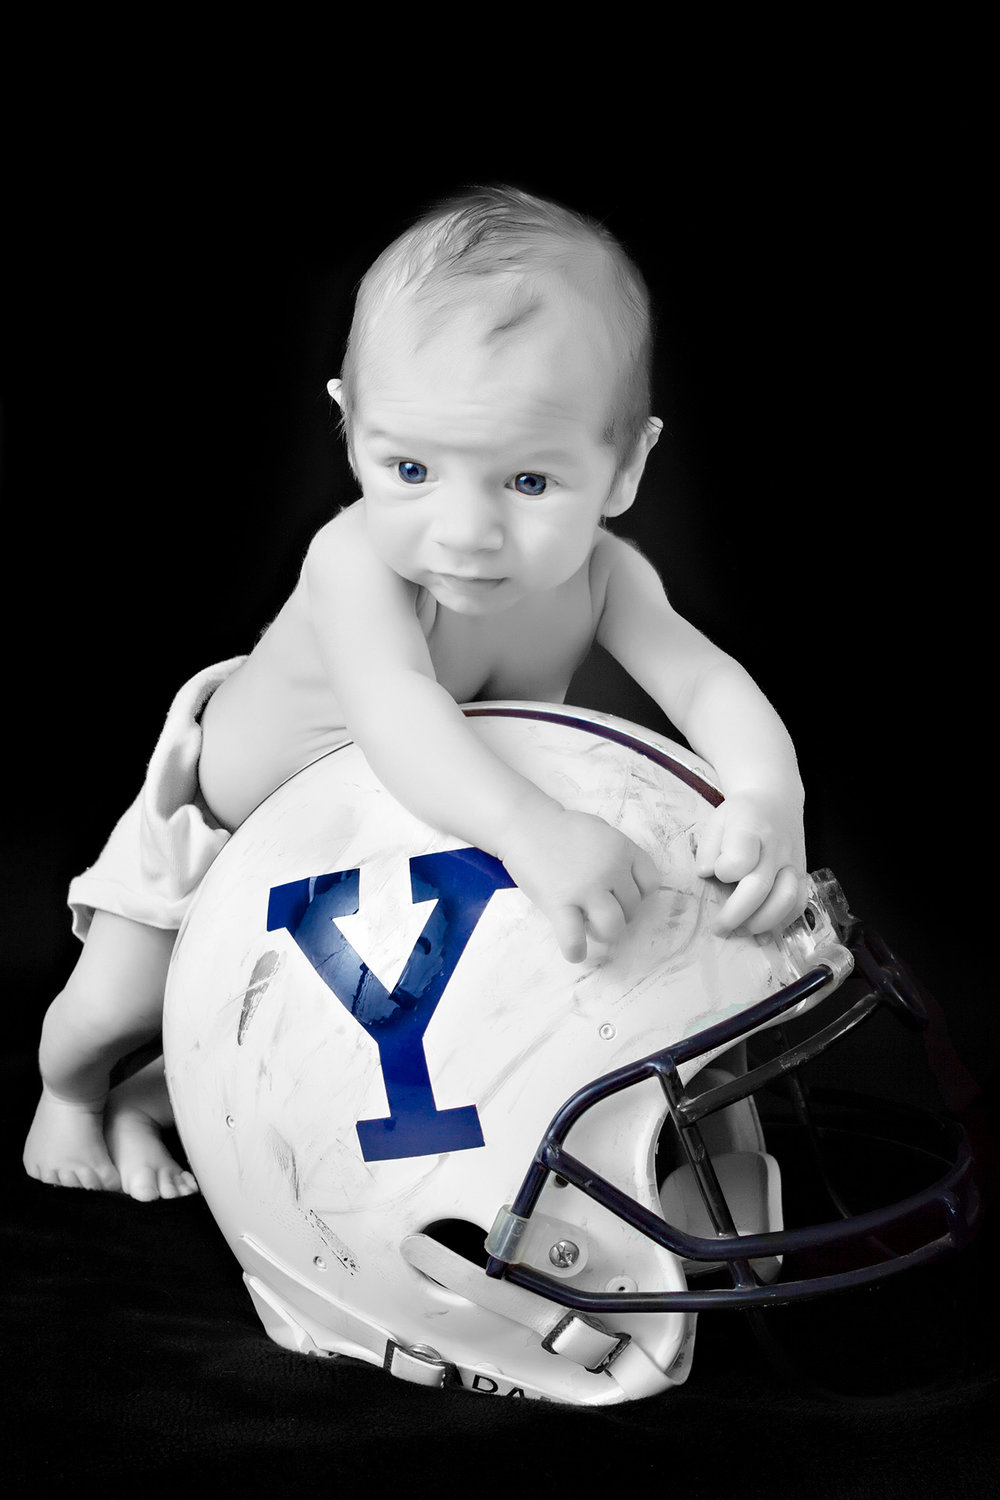 Portrait of Baby on Yale Football Helmet on Black Background in the Studio